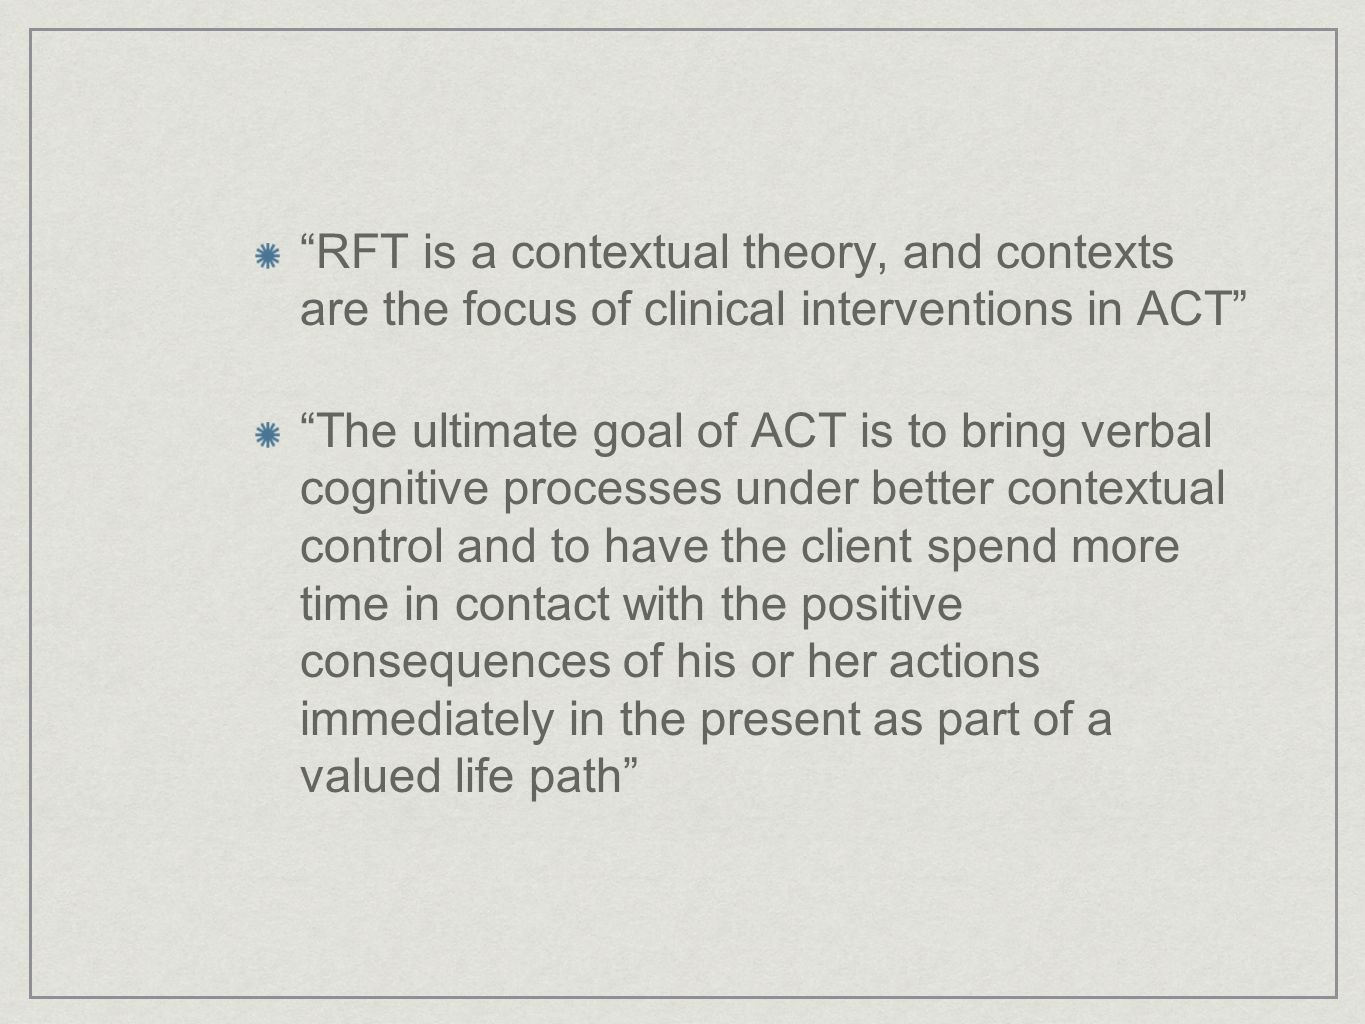 RFT is a contextual theory, and contexts are the focus of clinical interventions in ACT The ultimate goal of ACT is to bring verbal cognitive processes under better contextual control and to have the client spend more time in contact with the positive consequences of his or her actions immediately in the present as part of a valued life path